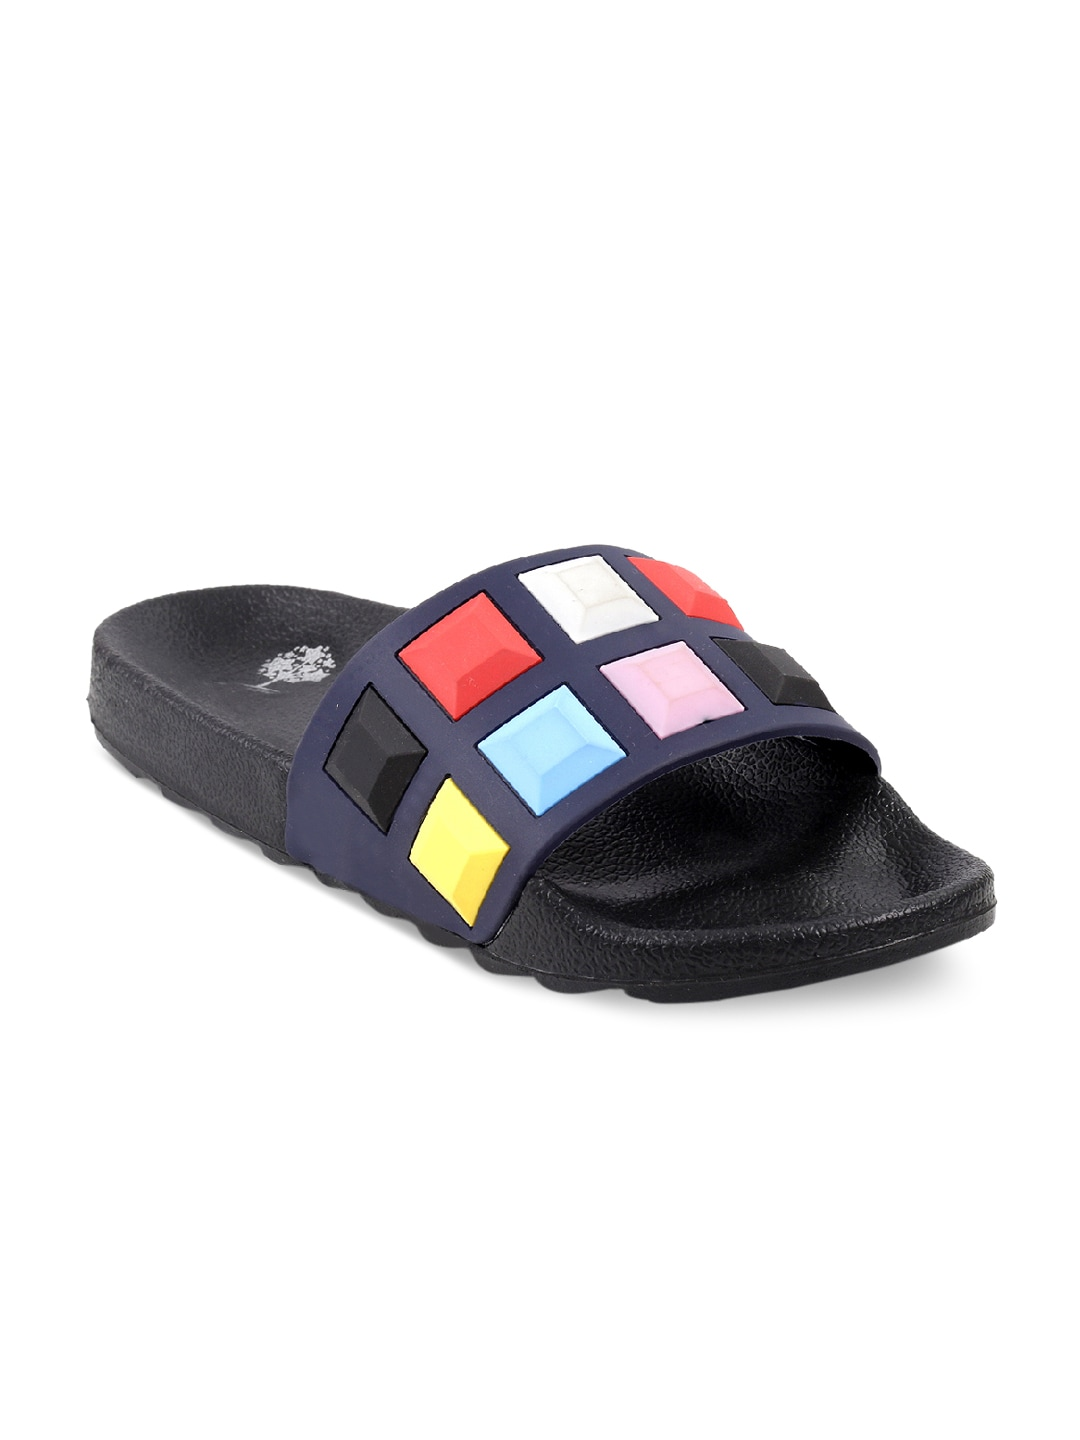 7c690658c16826 Flip-Flops - Buy Flip-Flop   Chappals Online in India